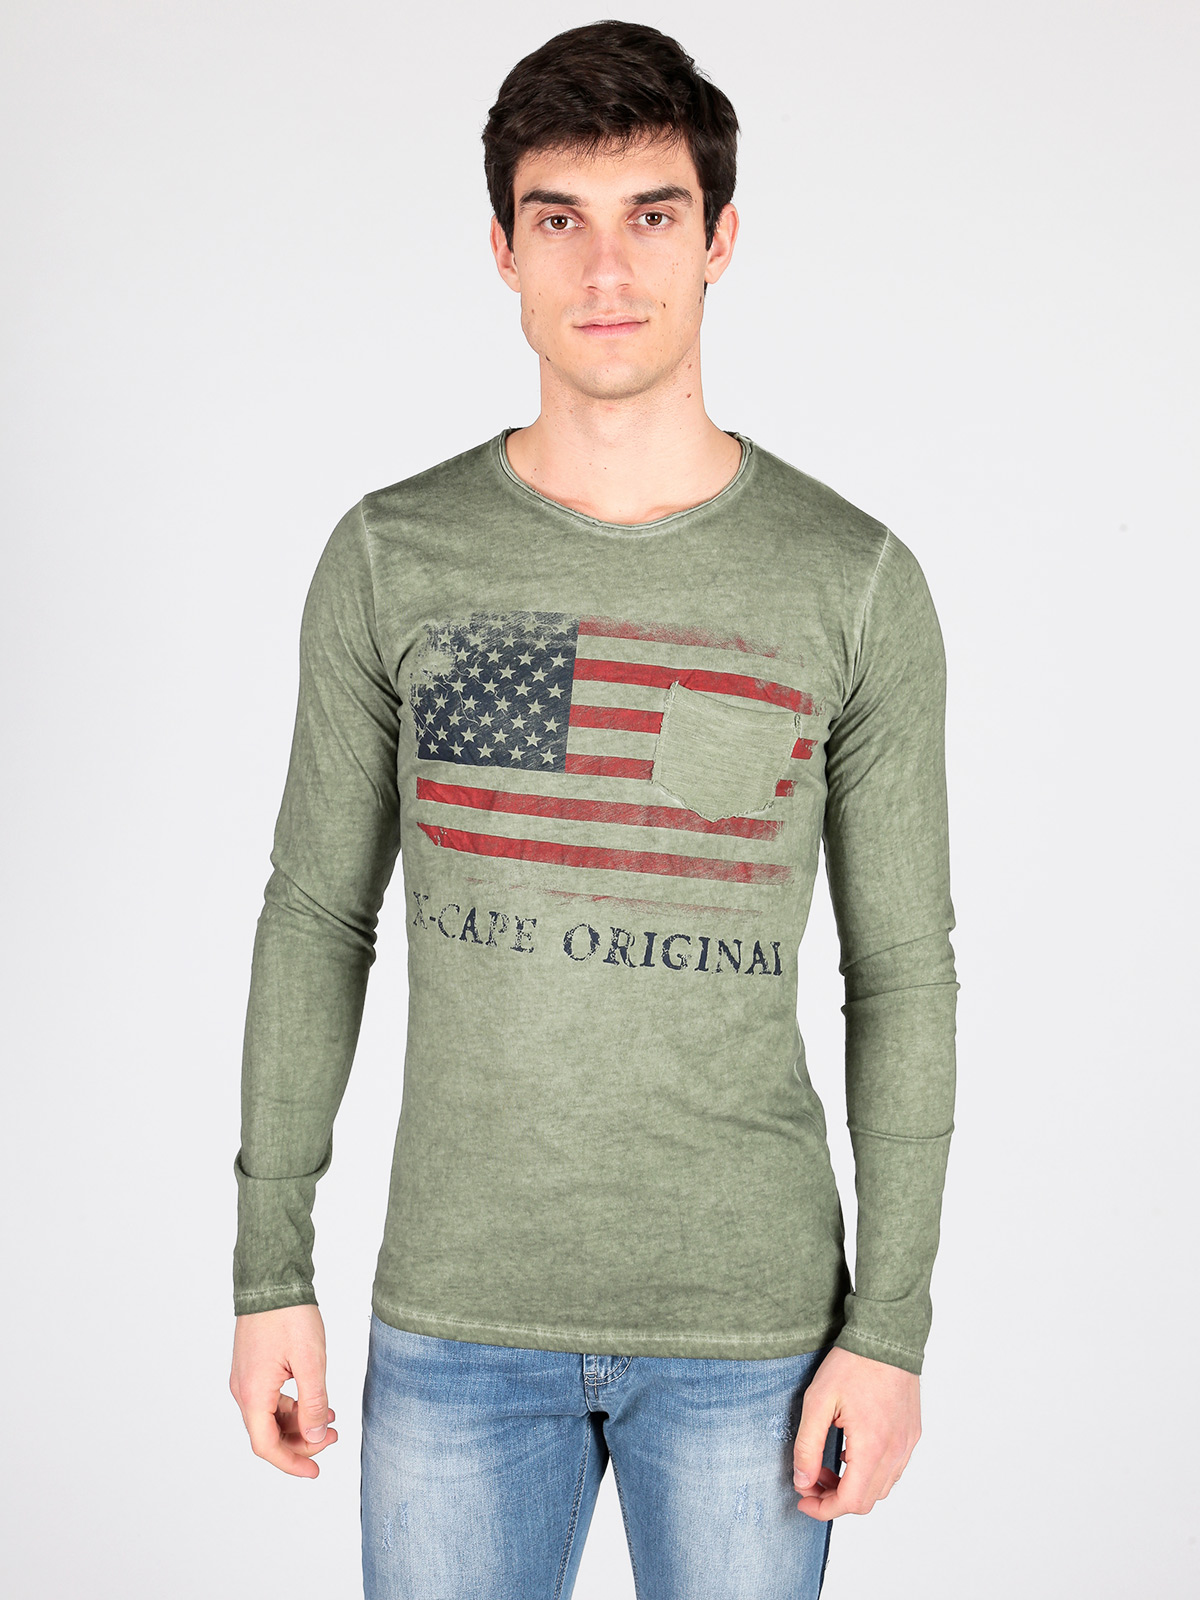 Vest With Pocket And Printing Flag